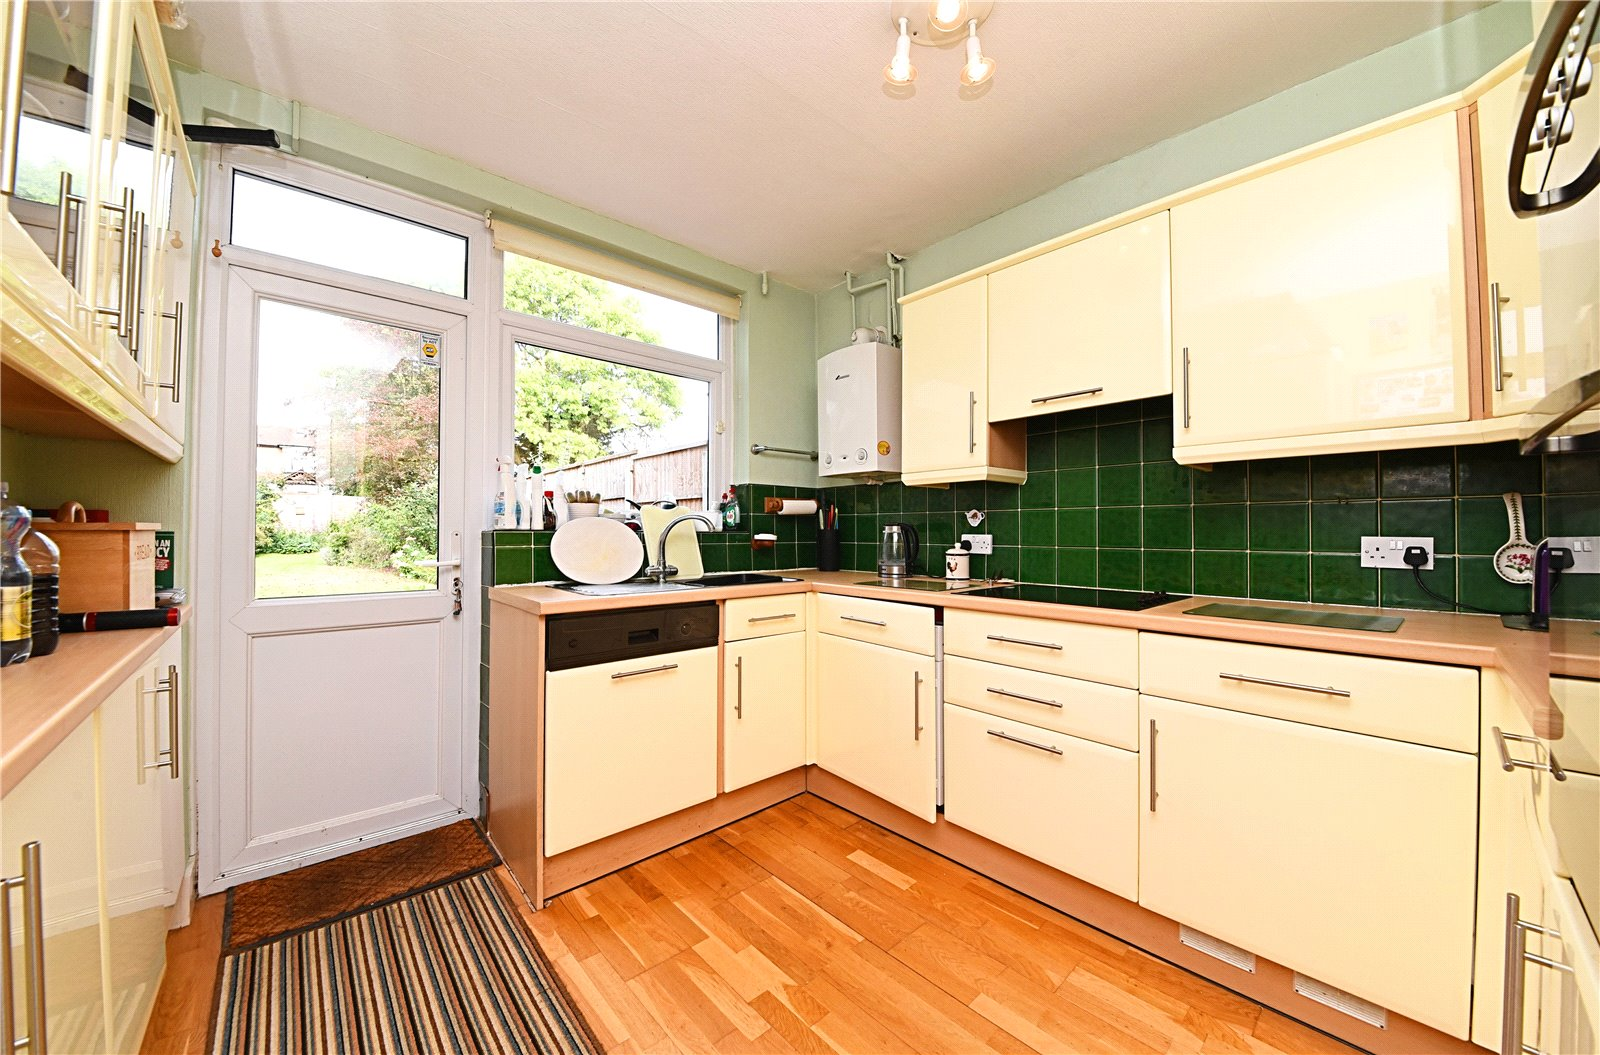 3 bed house for sale in Totteridge, N20 8HL  - Property Image 3